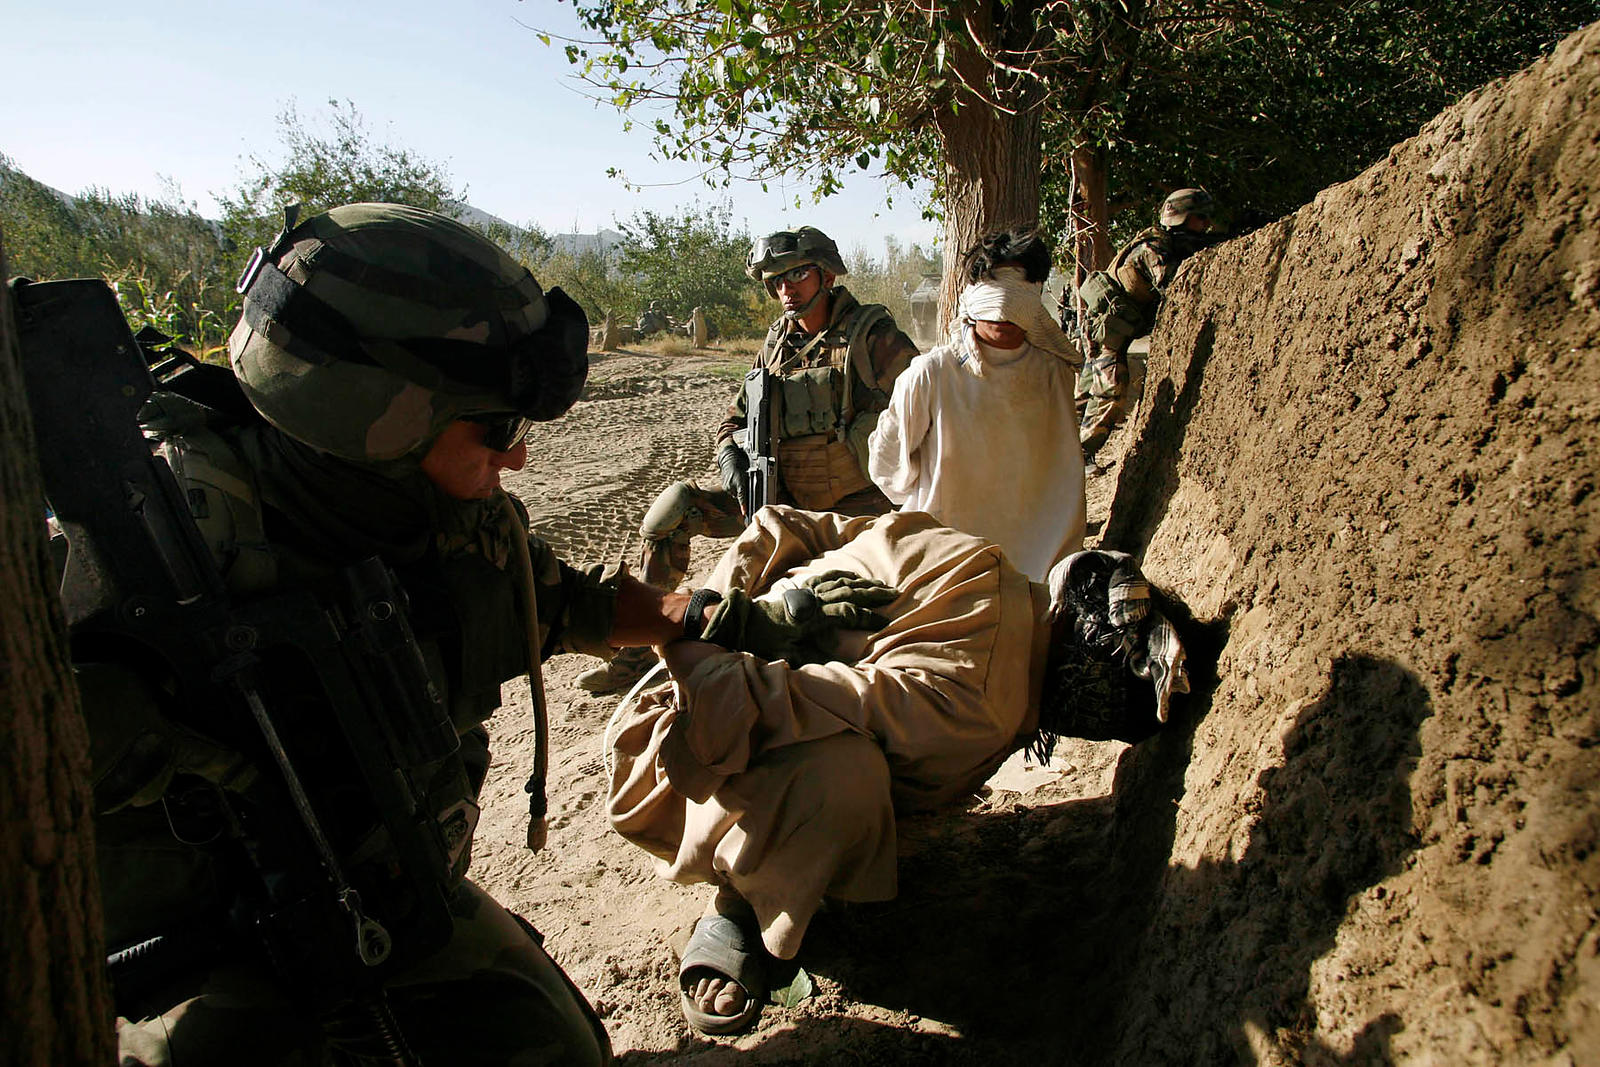 2008. 2008 Kapisa. Patrol in the village of Sediqkhel, Alasay valley with the 8th RPIMA. Two suspects have just been arrested by soldiers of the 8th RPIMA. They carried a Kalashnikov and supplied army and the pro-Taliban propaganda.